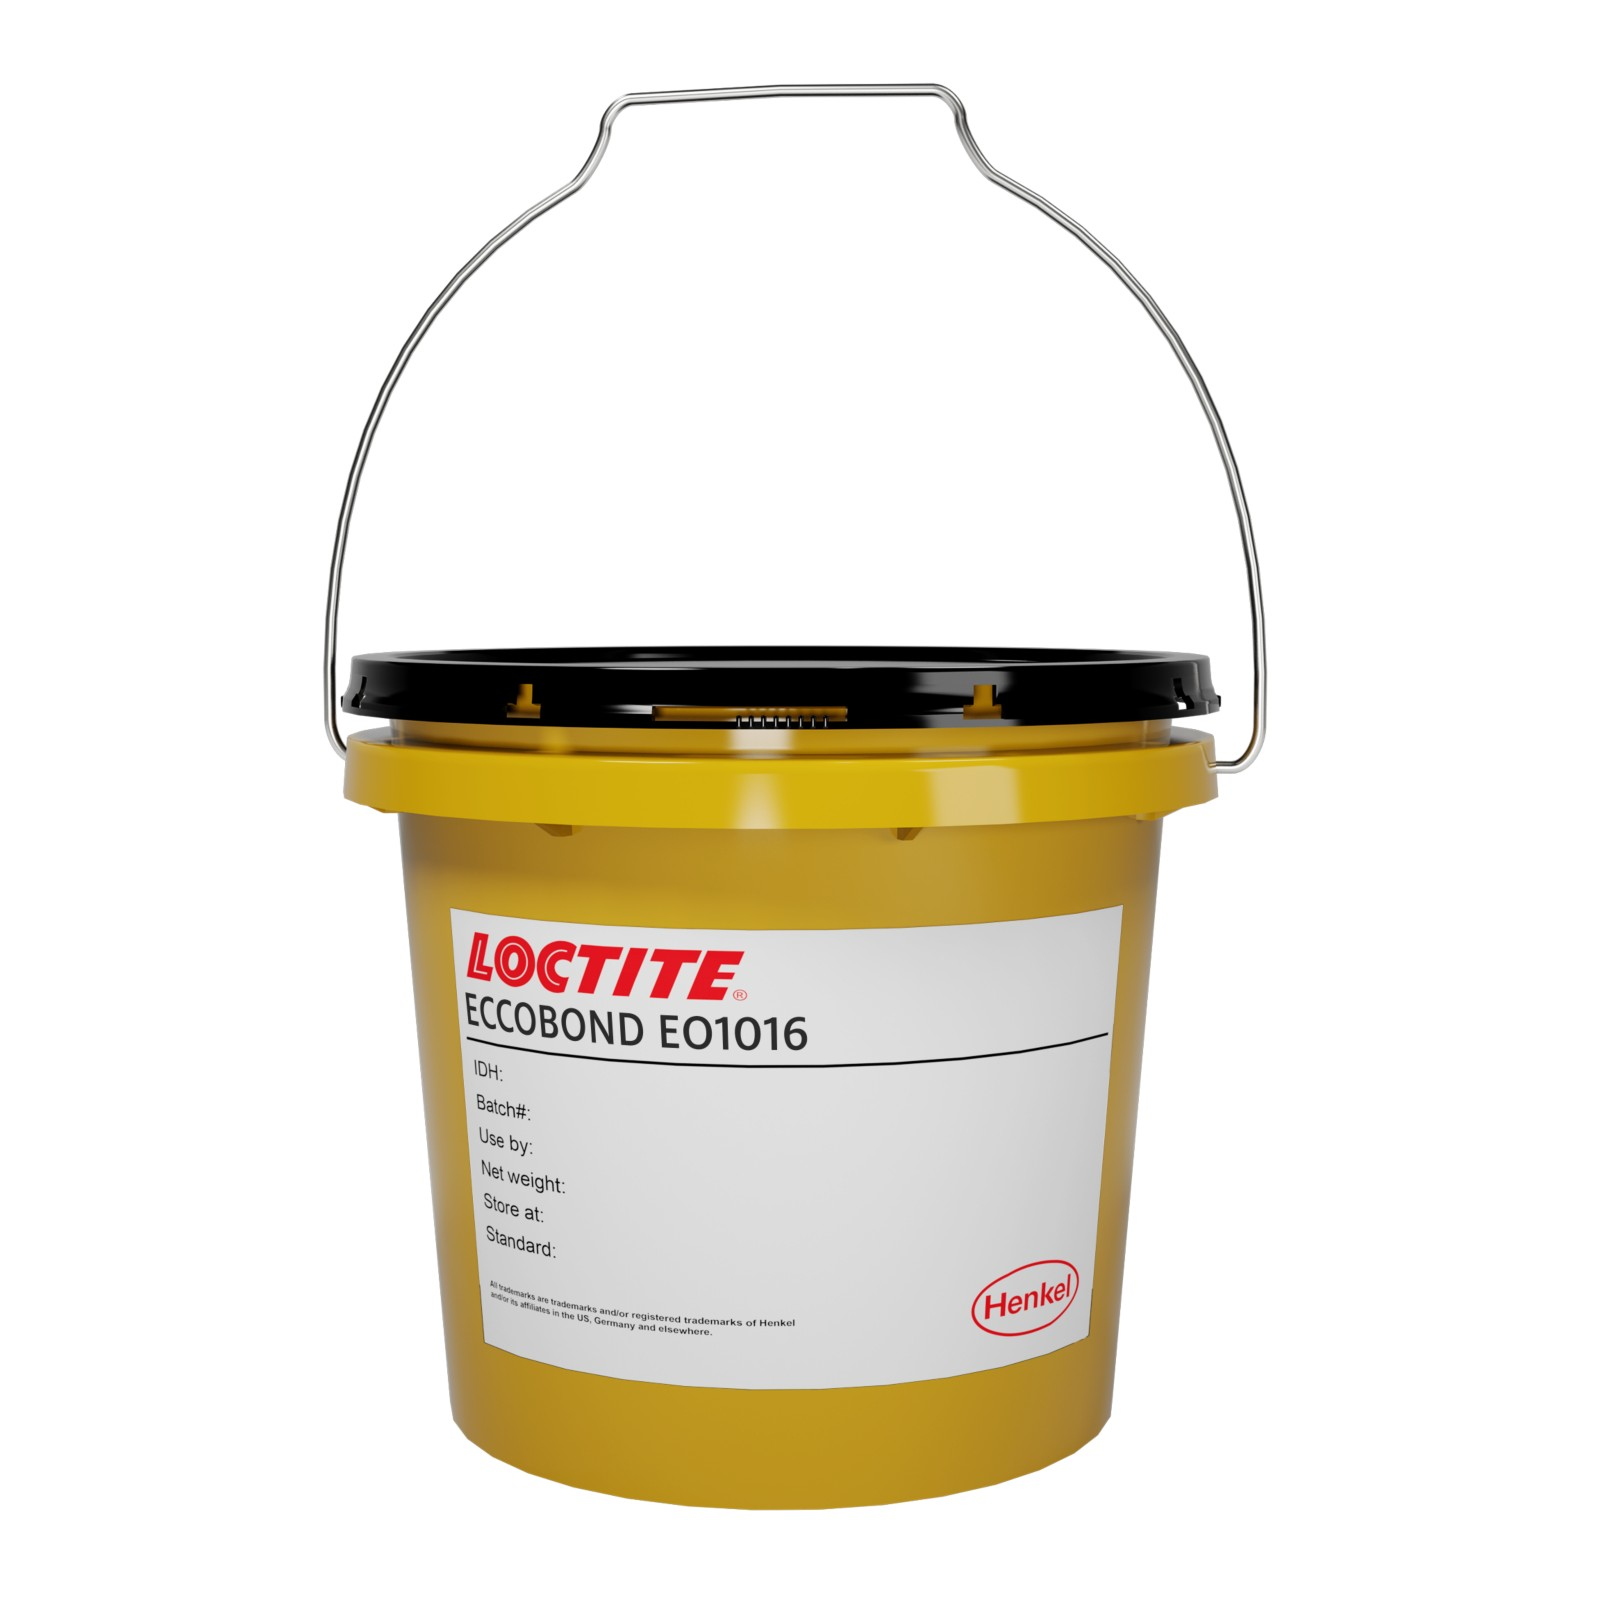 LOCTITE ECCOBOND EO1016 Gallon Packaging